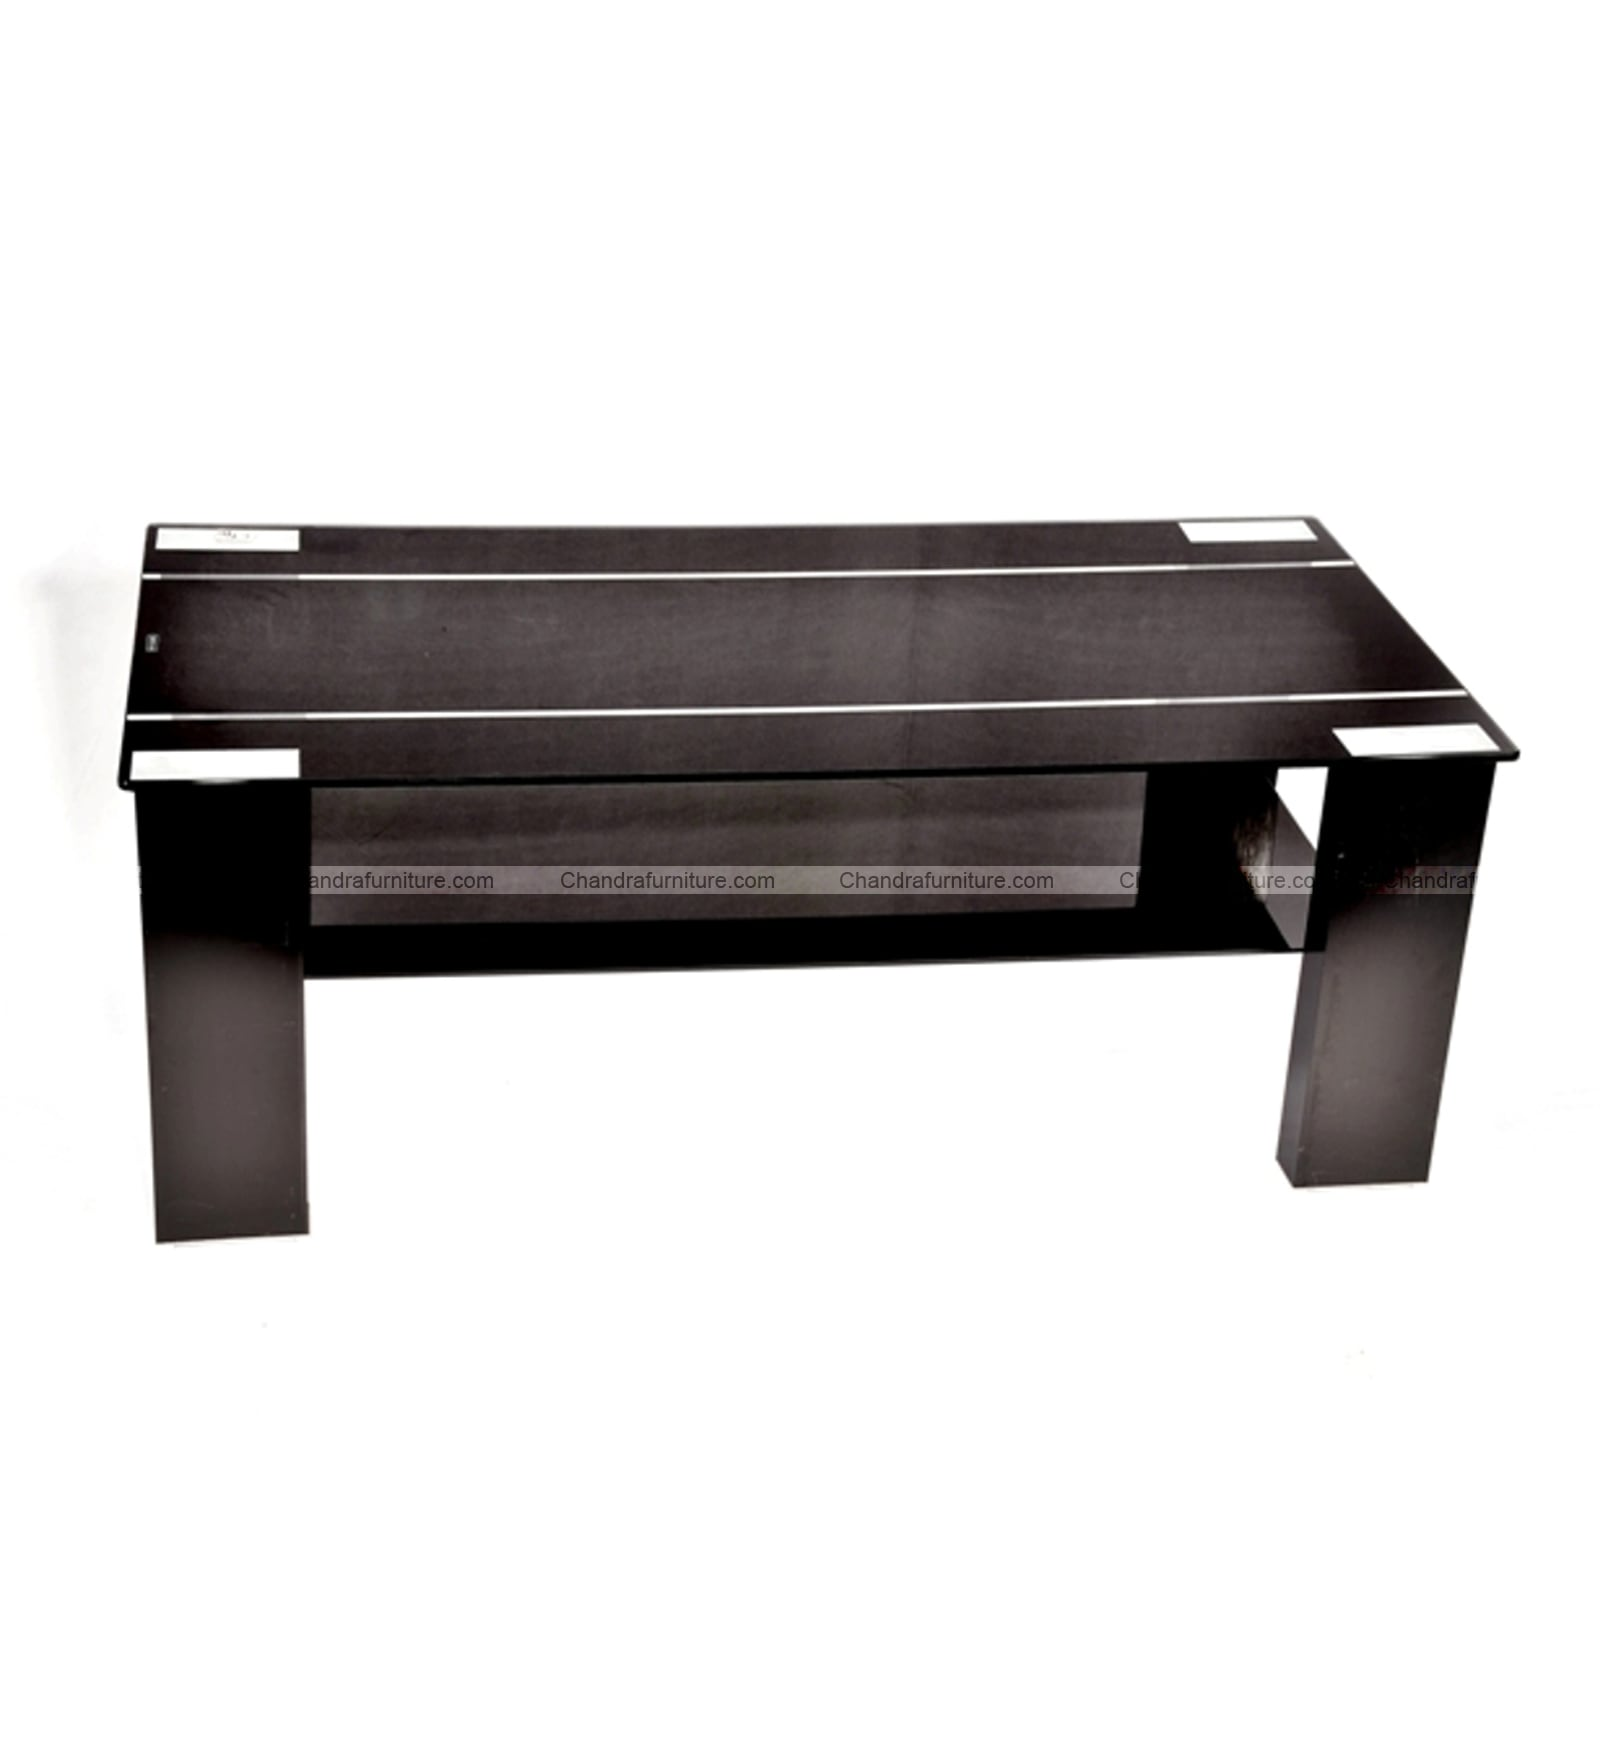 CHANDRA FURNITURE CENTER TABLE  CT-80